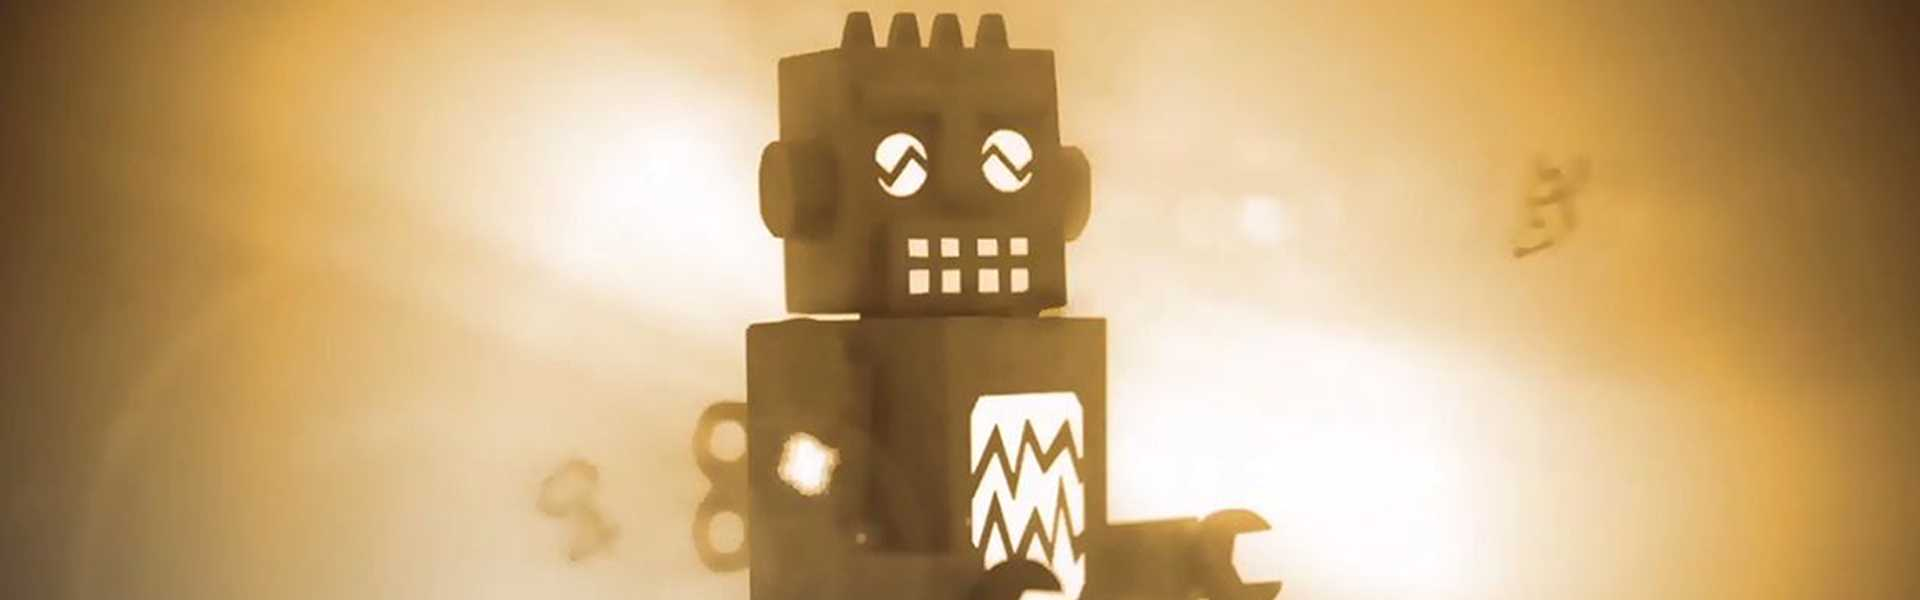 A CGI toy robot in papercut style surrounded by a warm glow and light flairs